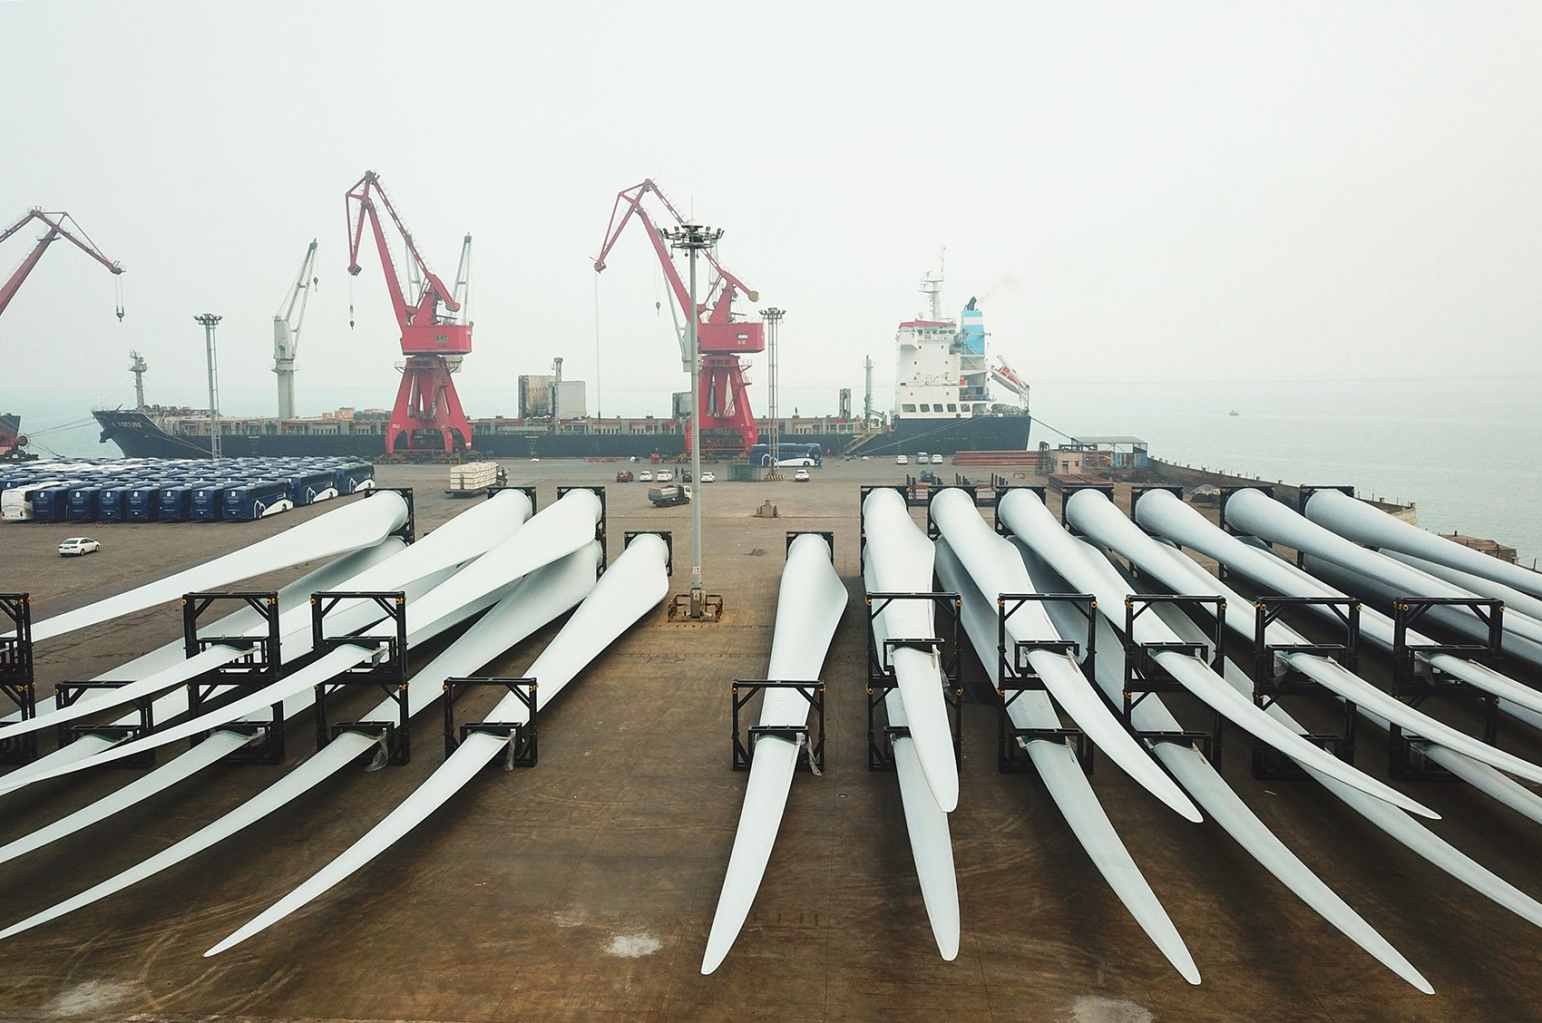 Wind turbine blades await export at a port in Lianyungang in China's eastern Jiangsu province on April 12. STR/AFP/Getty Images